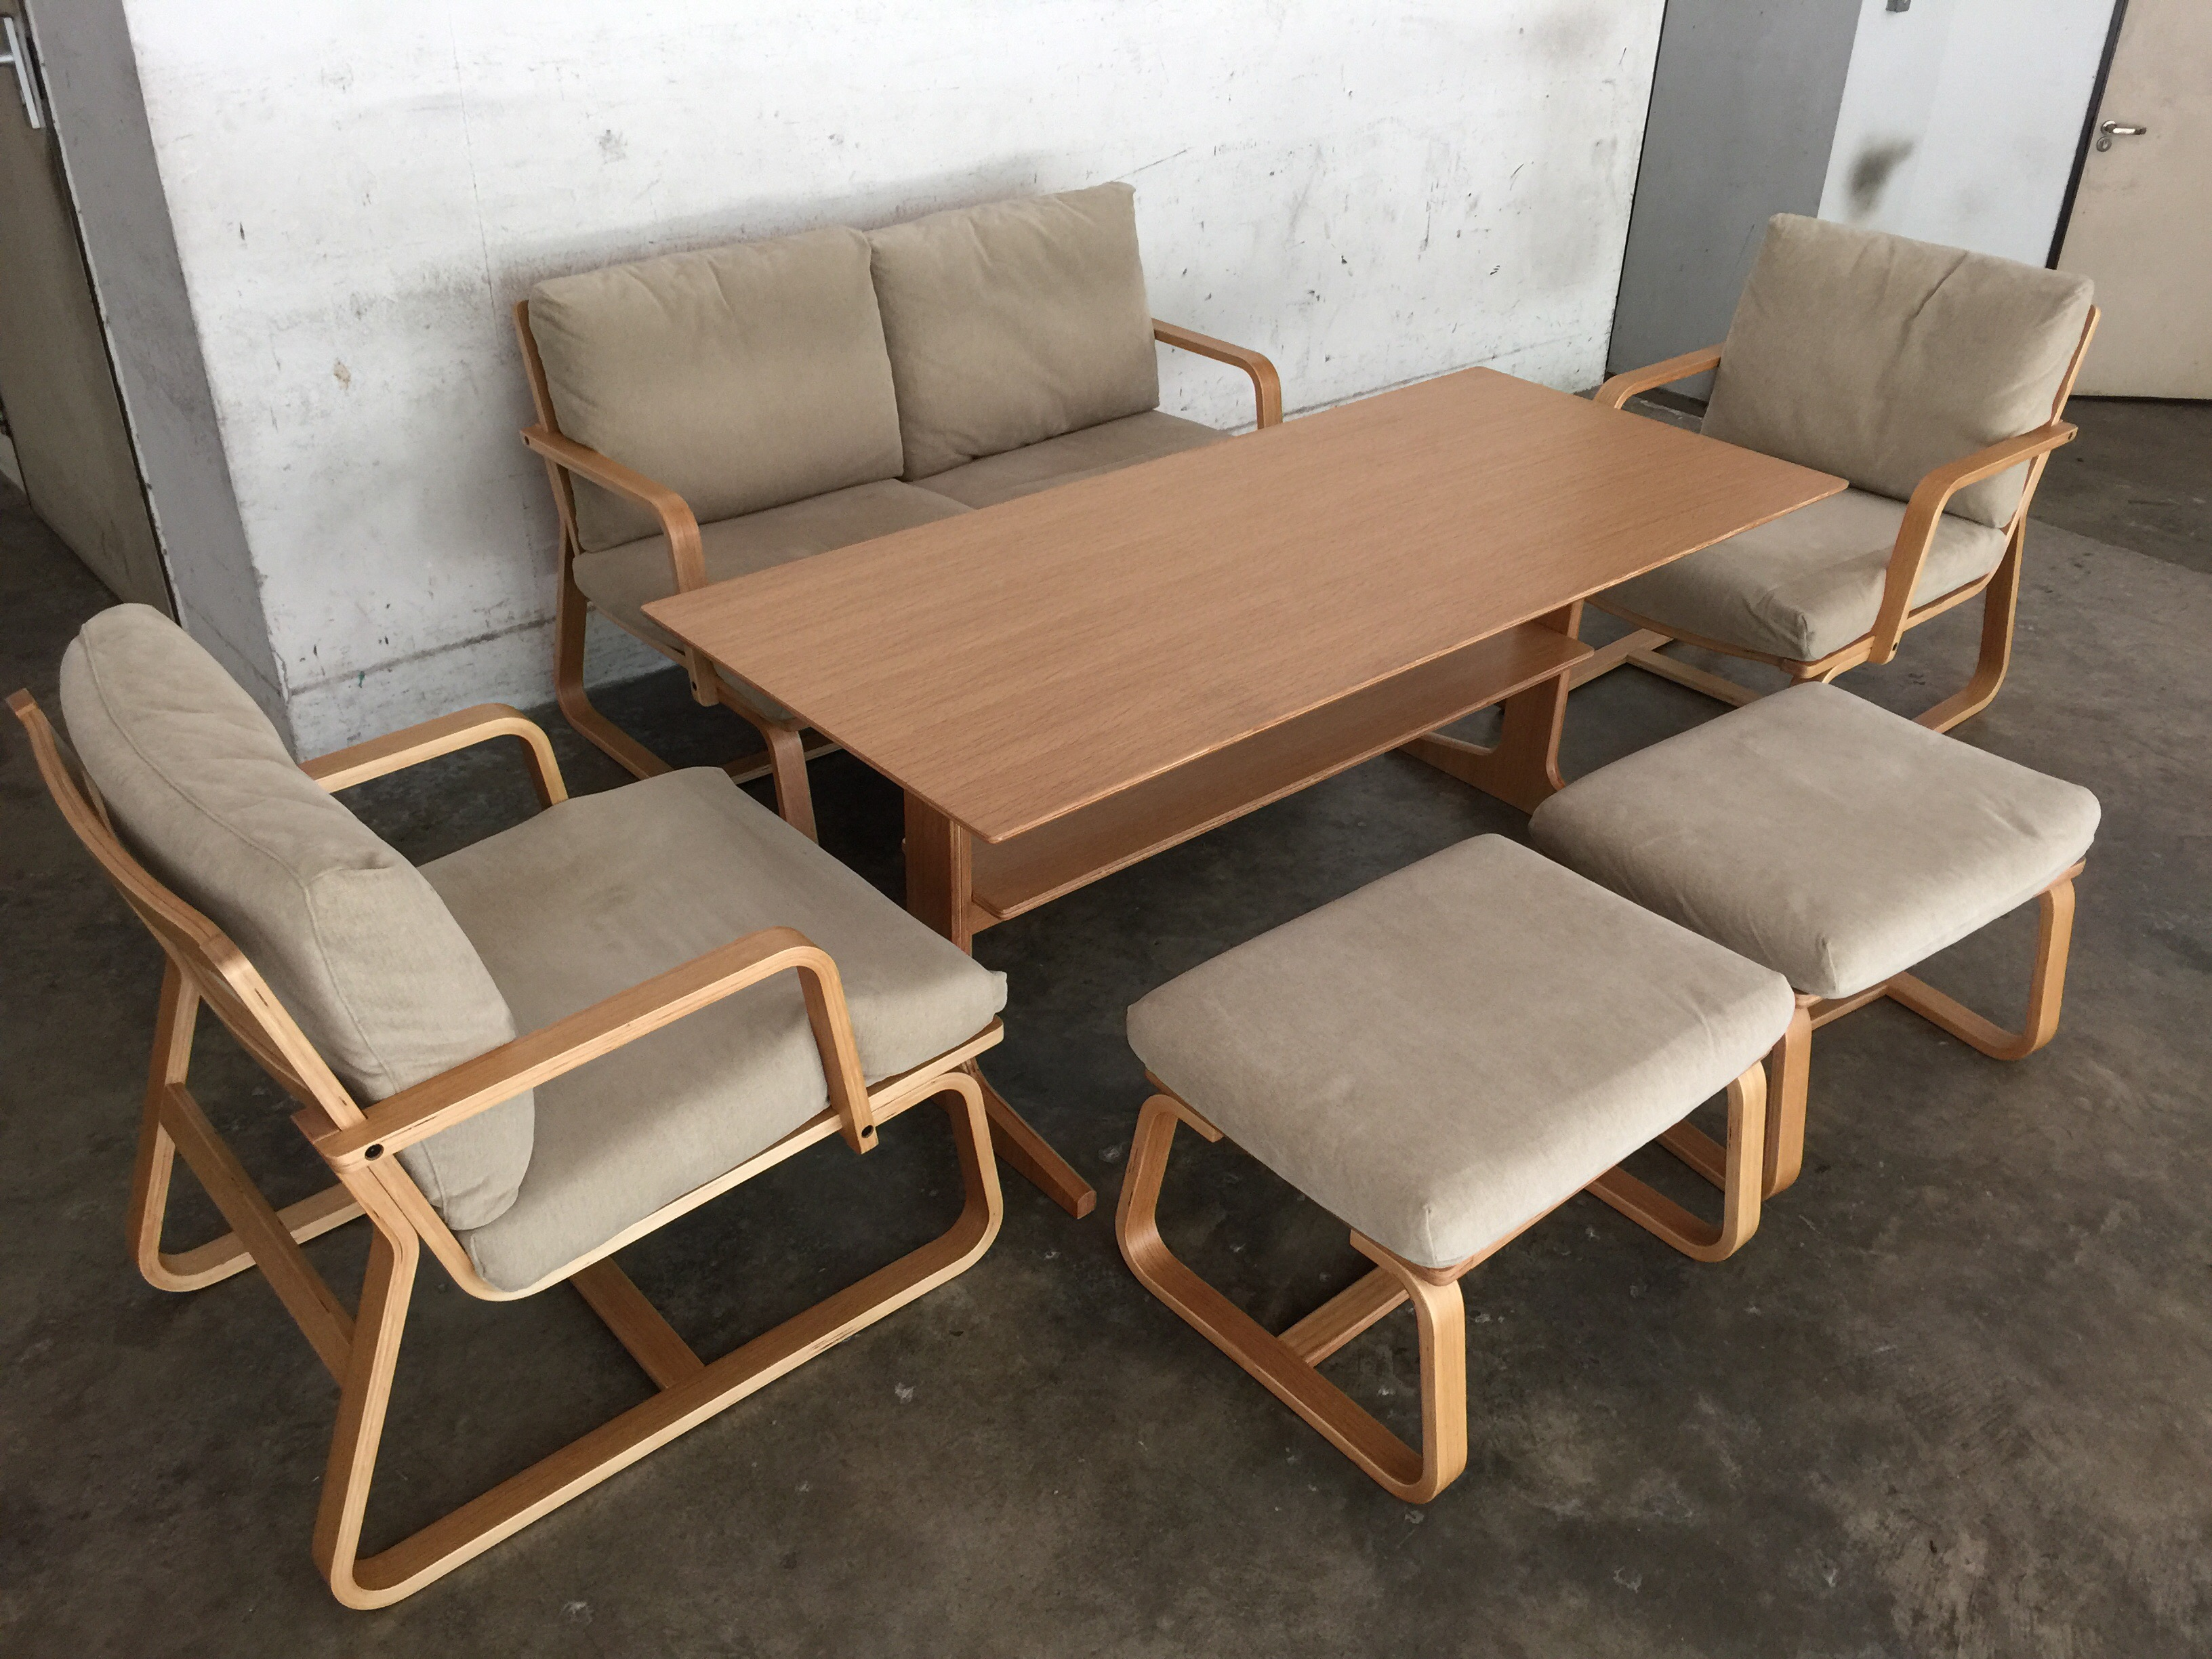 ... Cooldesign Cheap Outdoor Furniture Singapore